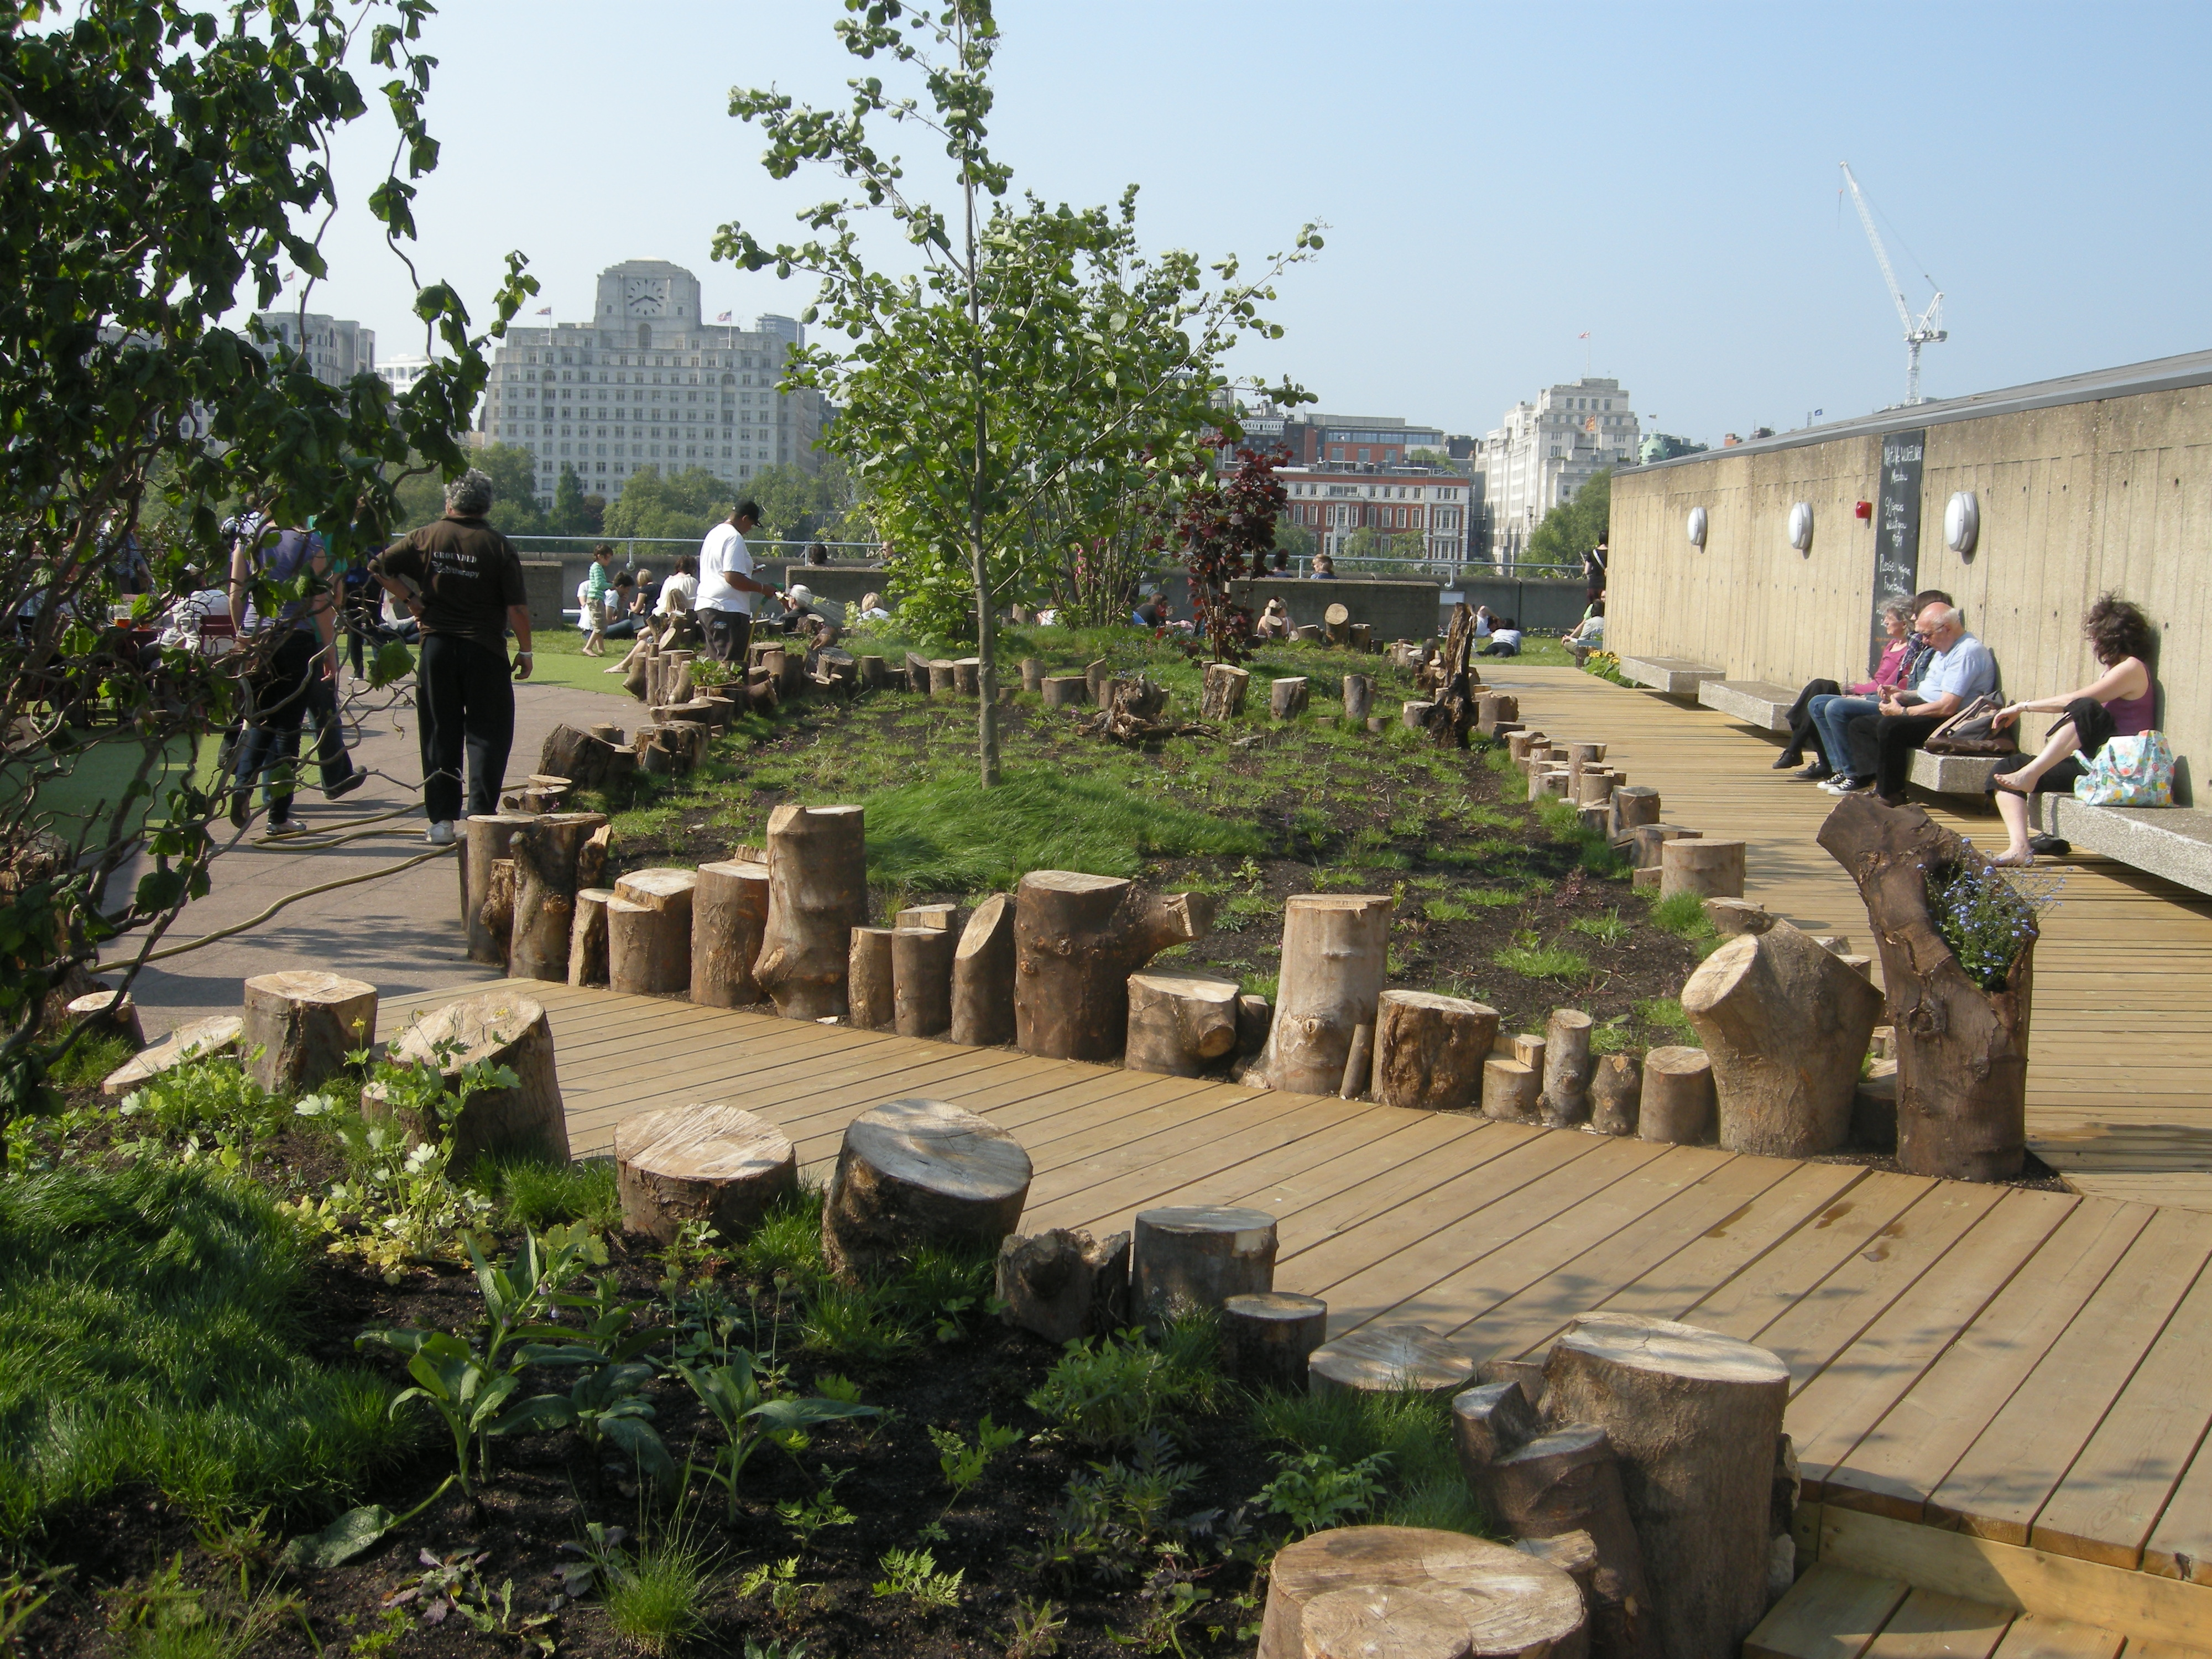 Garden Centre: Queen Elizabeth Hall Roof Garden, London